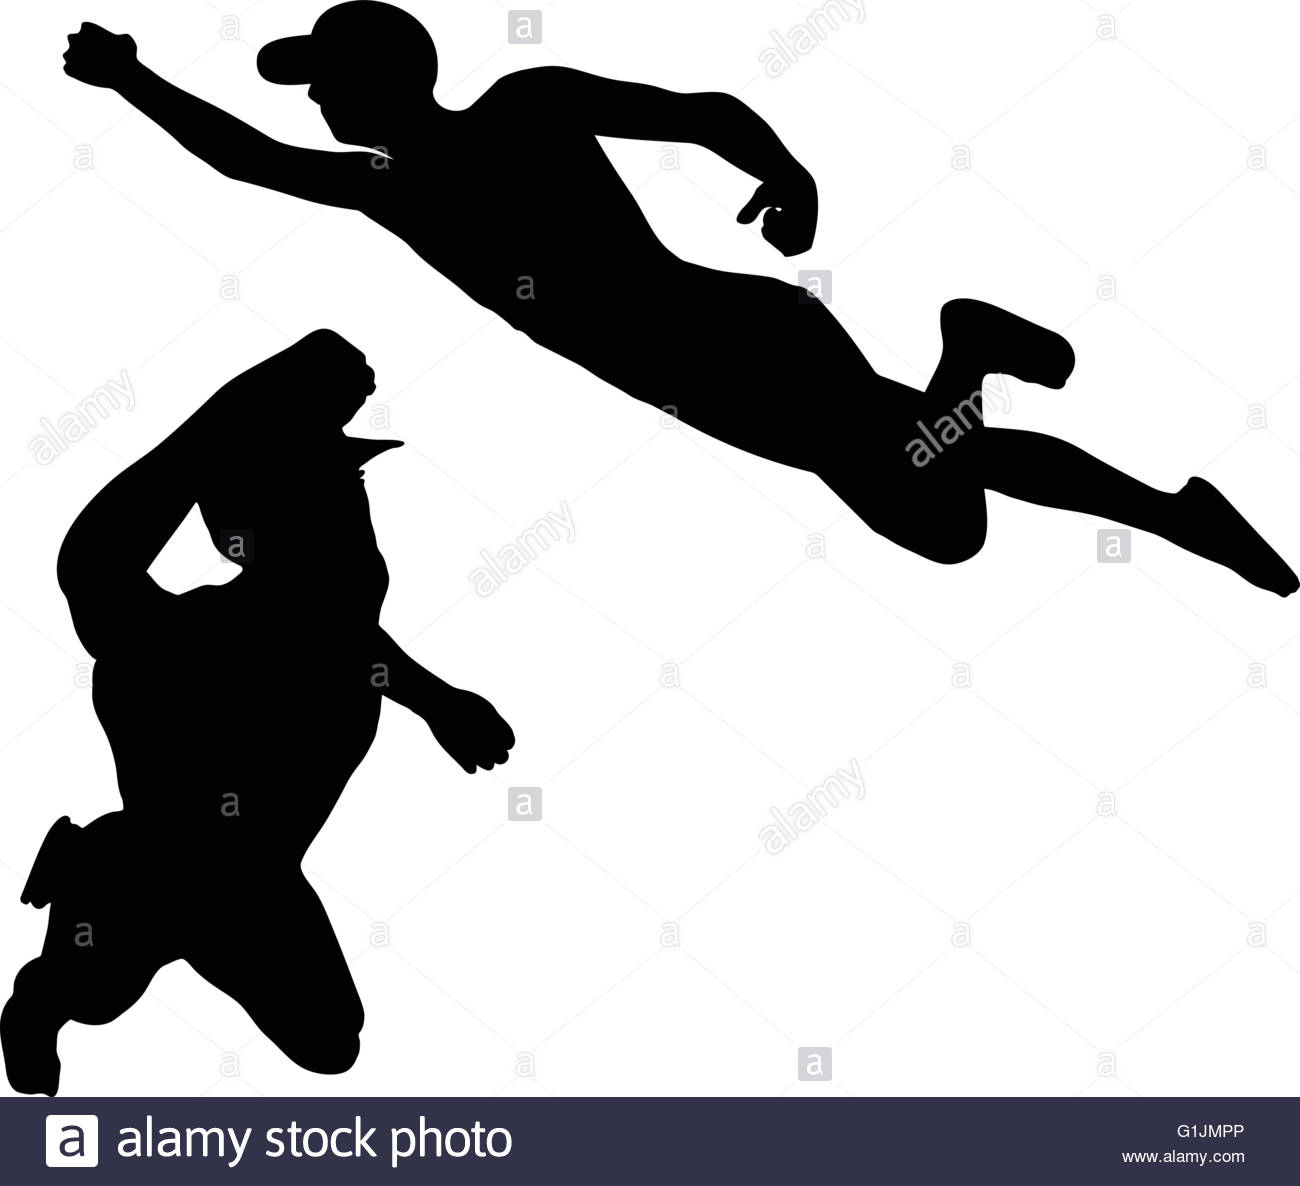 1300x1186 Superhero Flying Stock Photos Amp Superhero Flying Stock Images